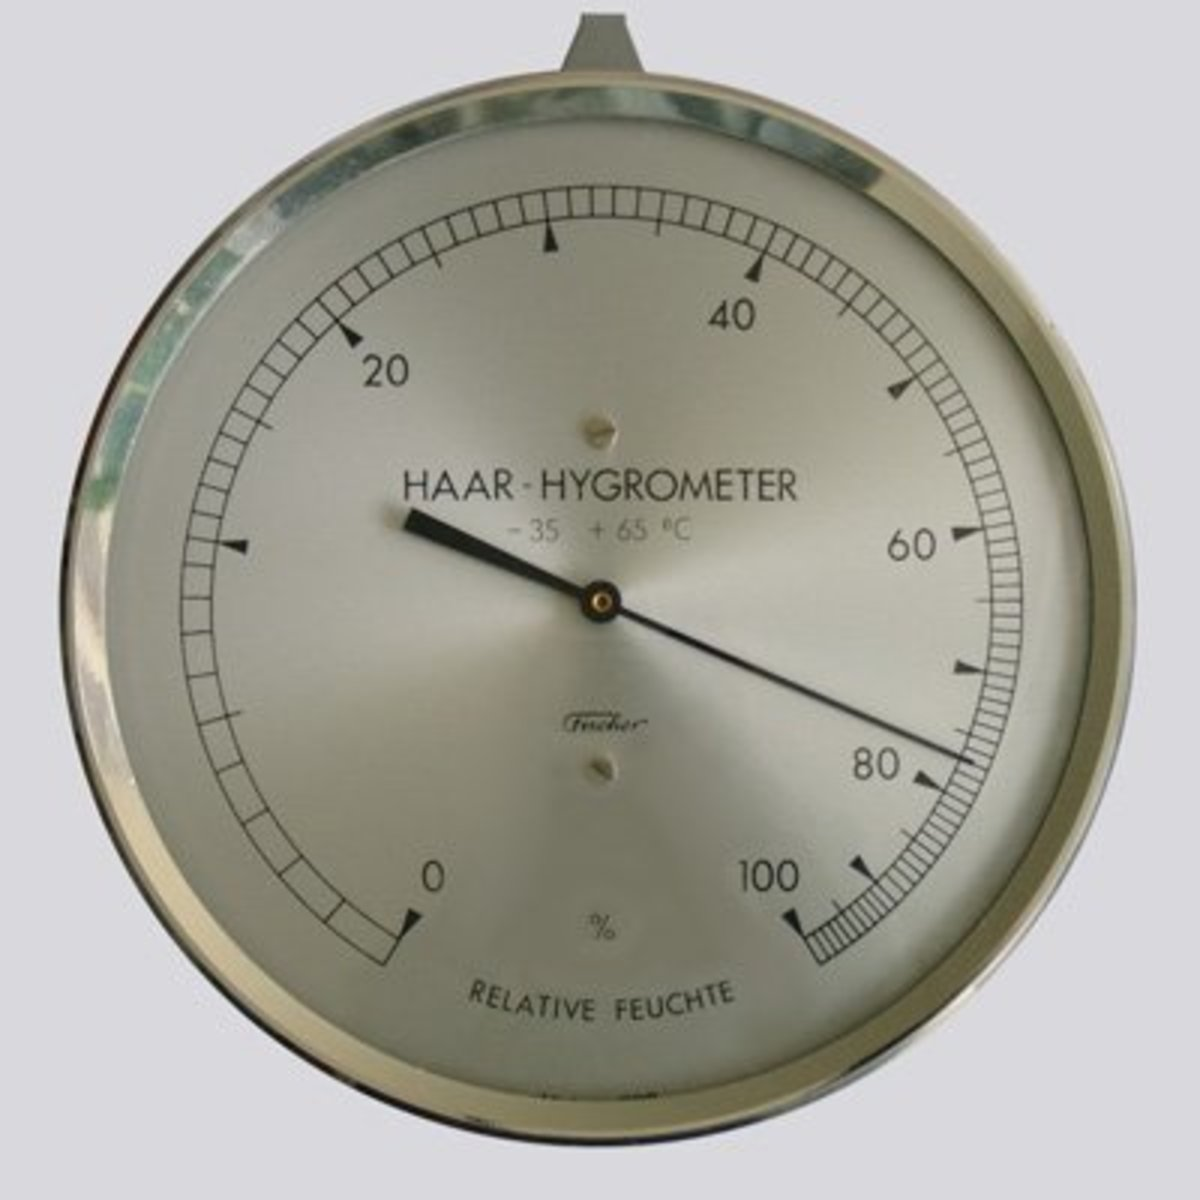 Make your own Hygrometer - A Simple Science Experiment for Kids